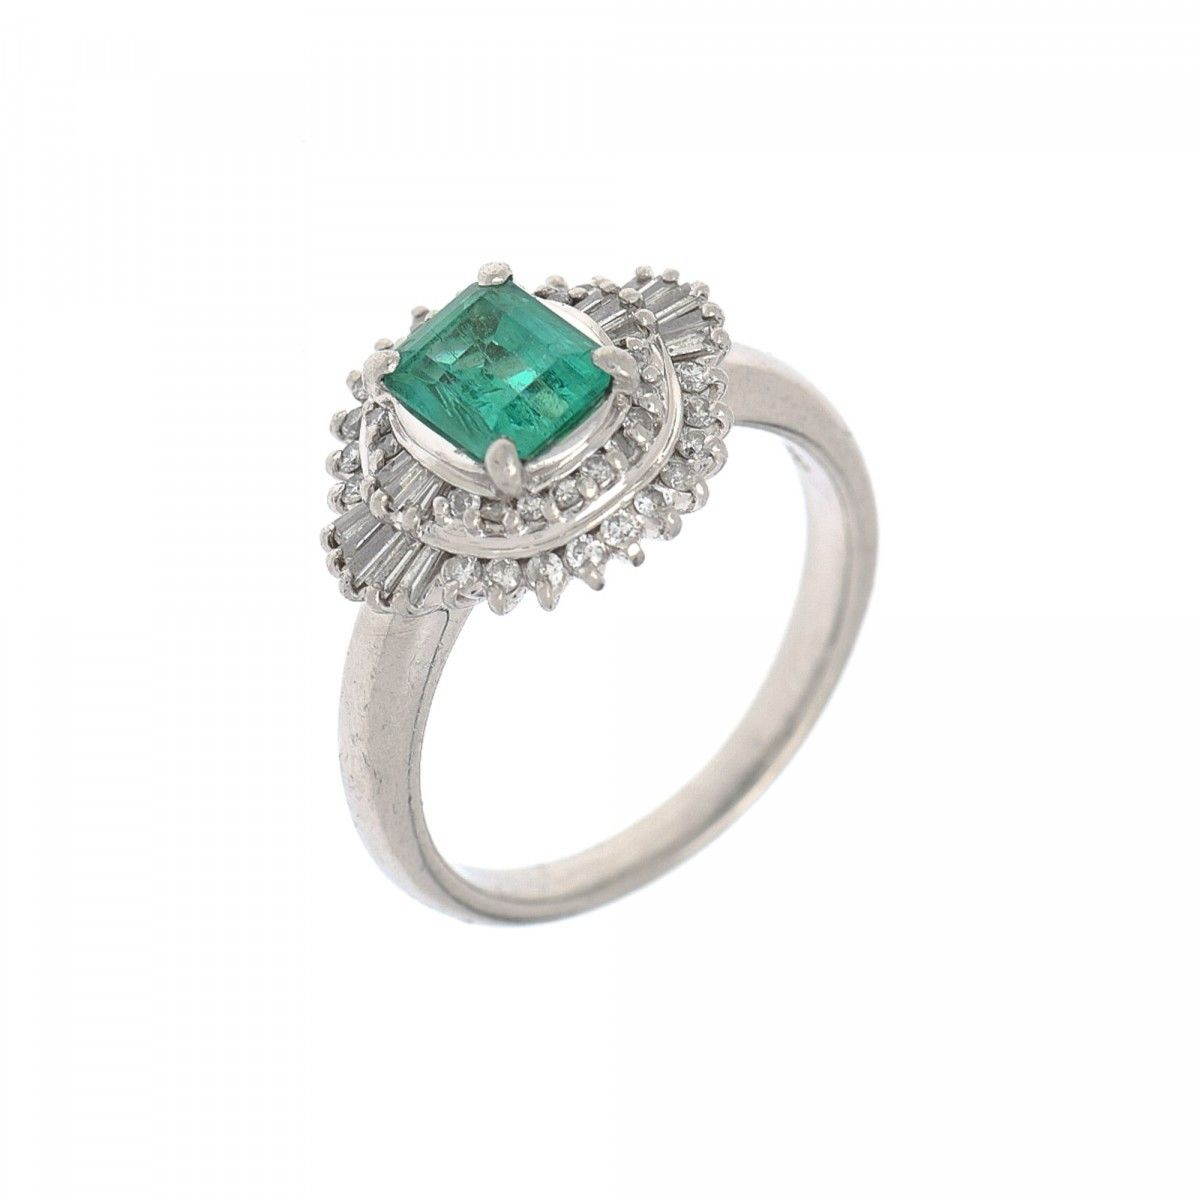 a vintage pin jewelry ring estate engagement colombian emerald